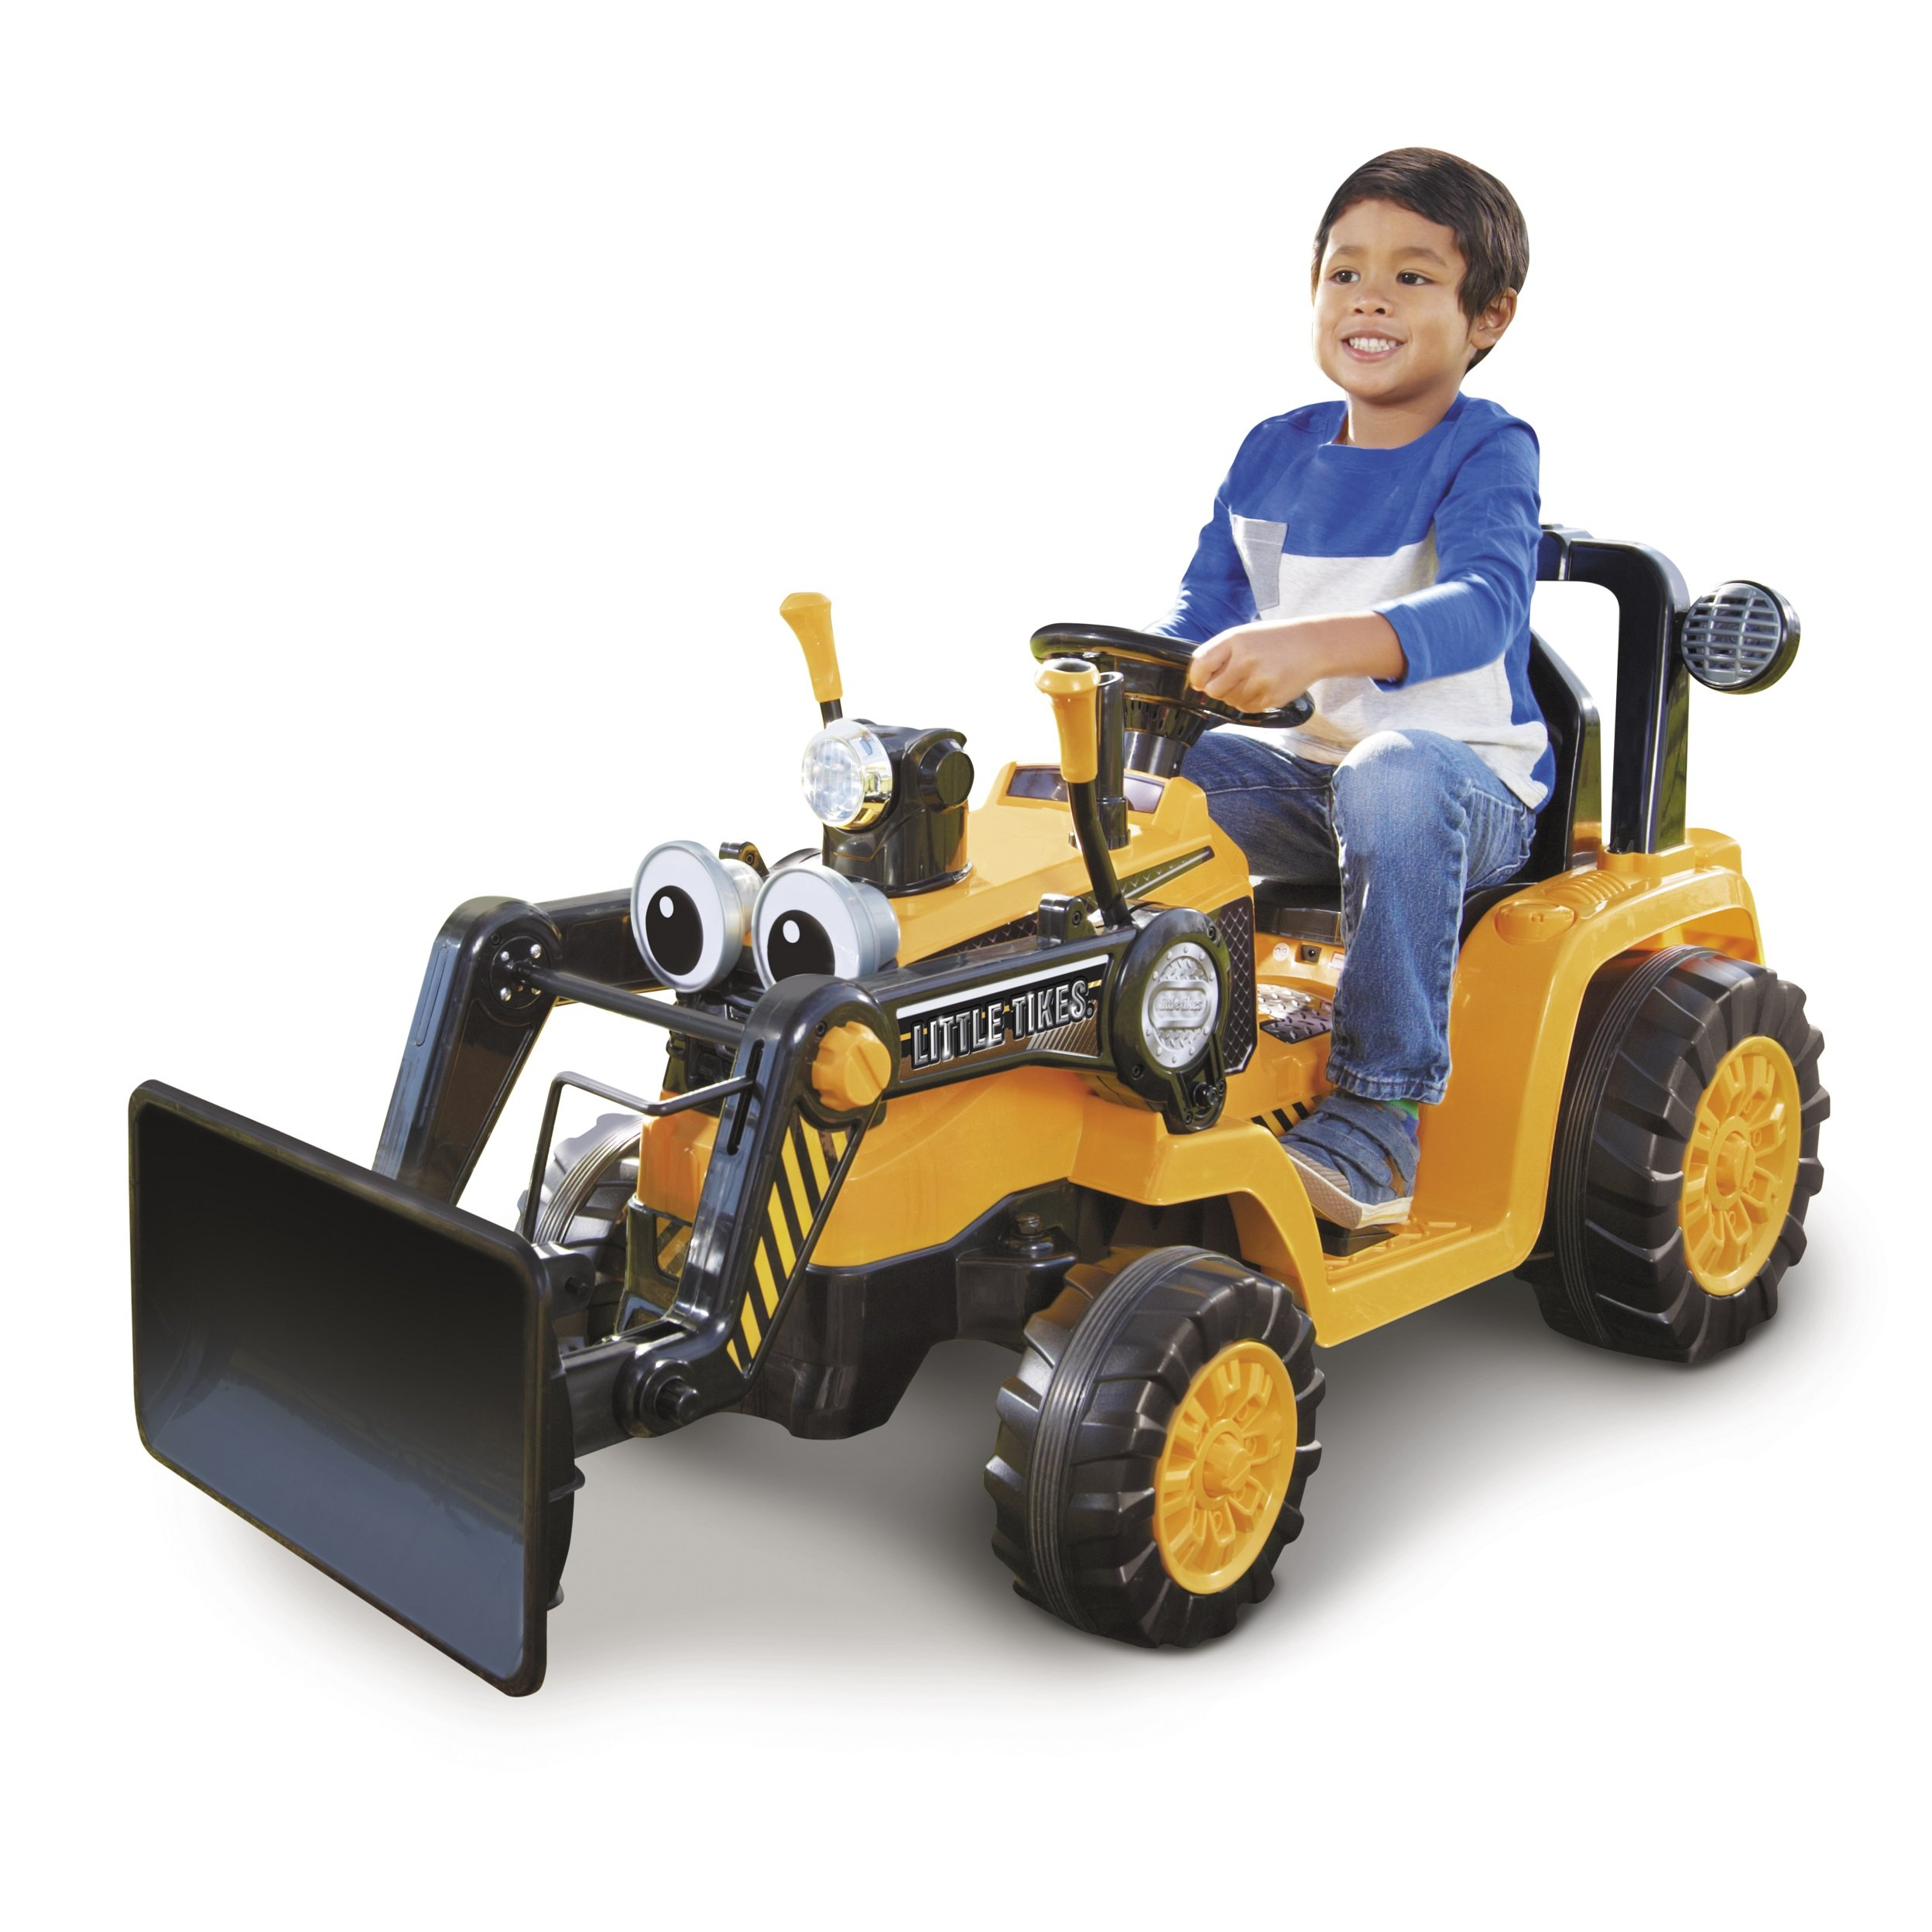 Little Tikes Cozy Dirt Digger 12V Battery Ride On by MGA